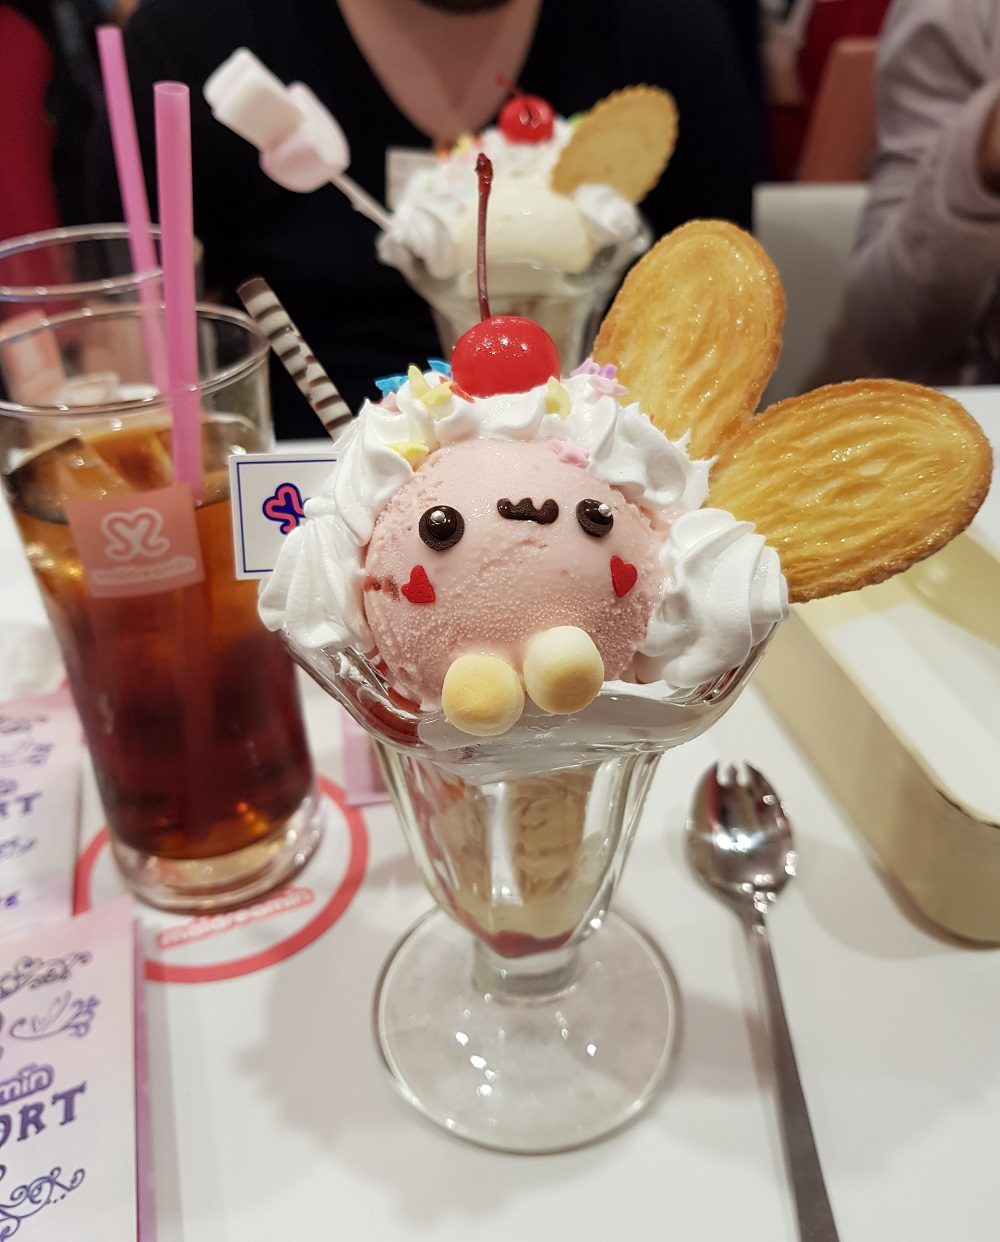 [Japan] Maid Cafe in Akihabara